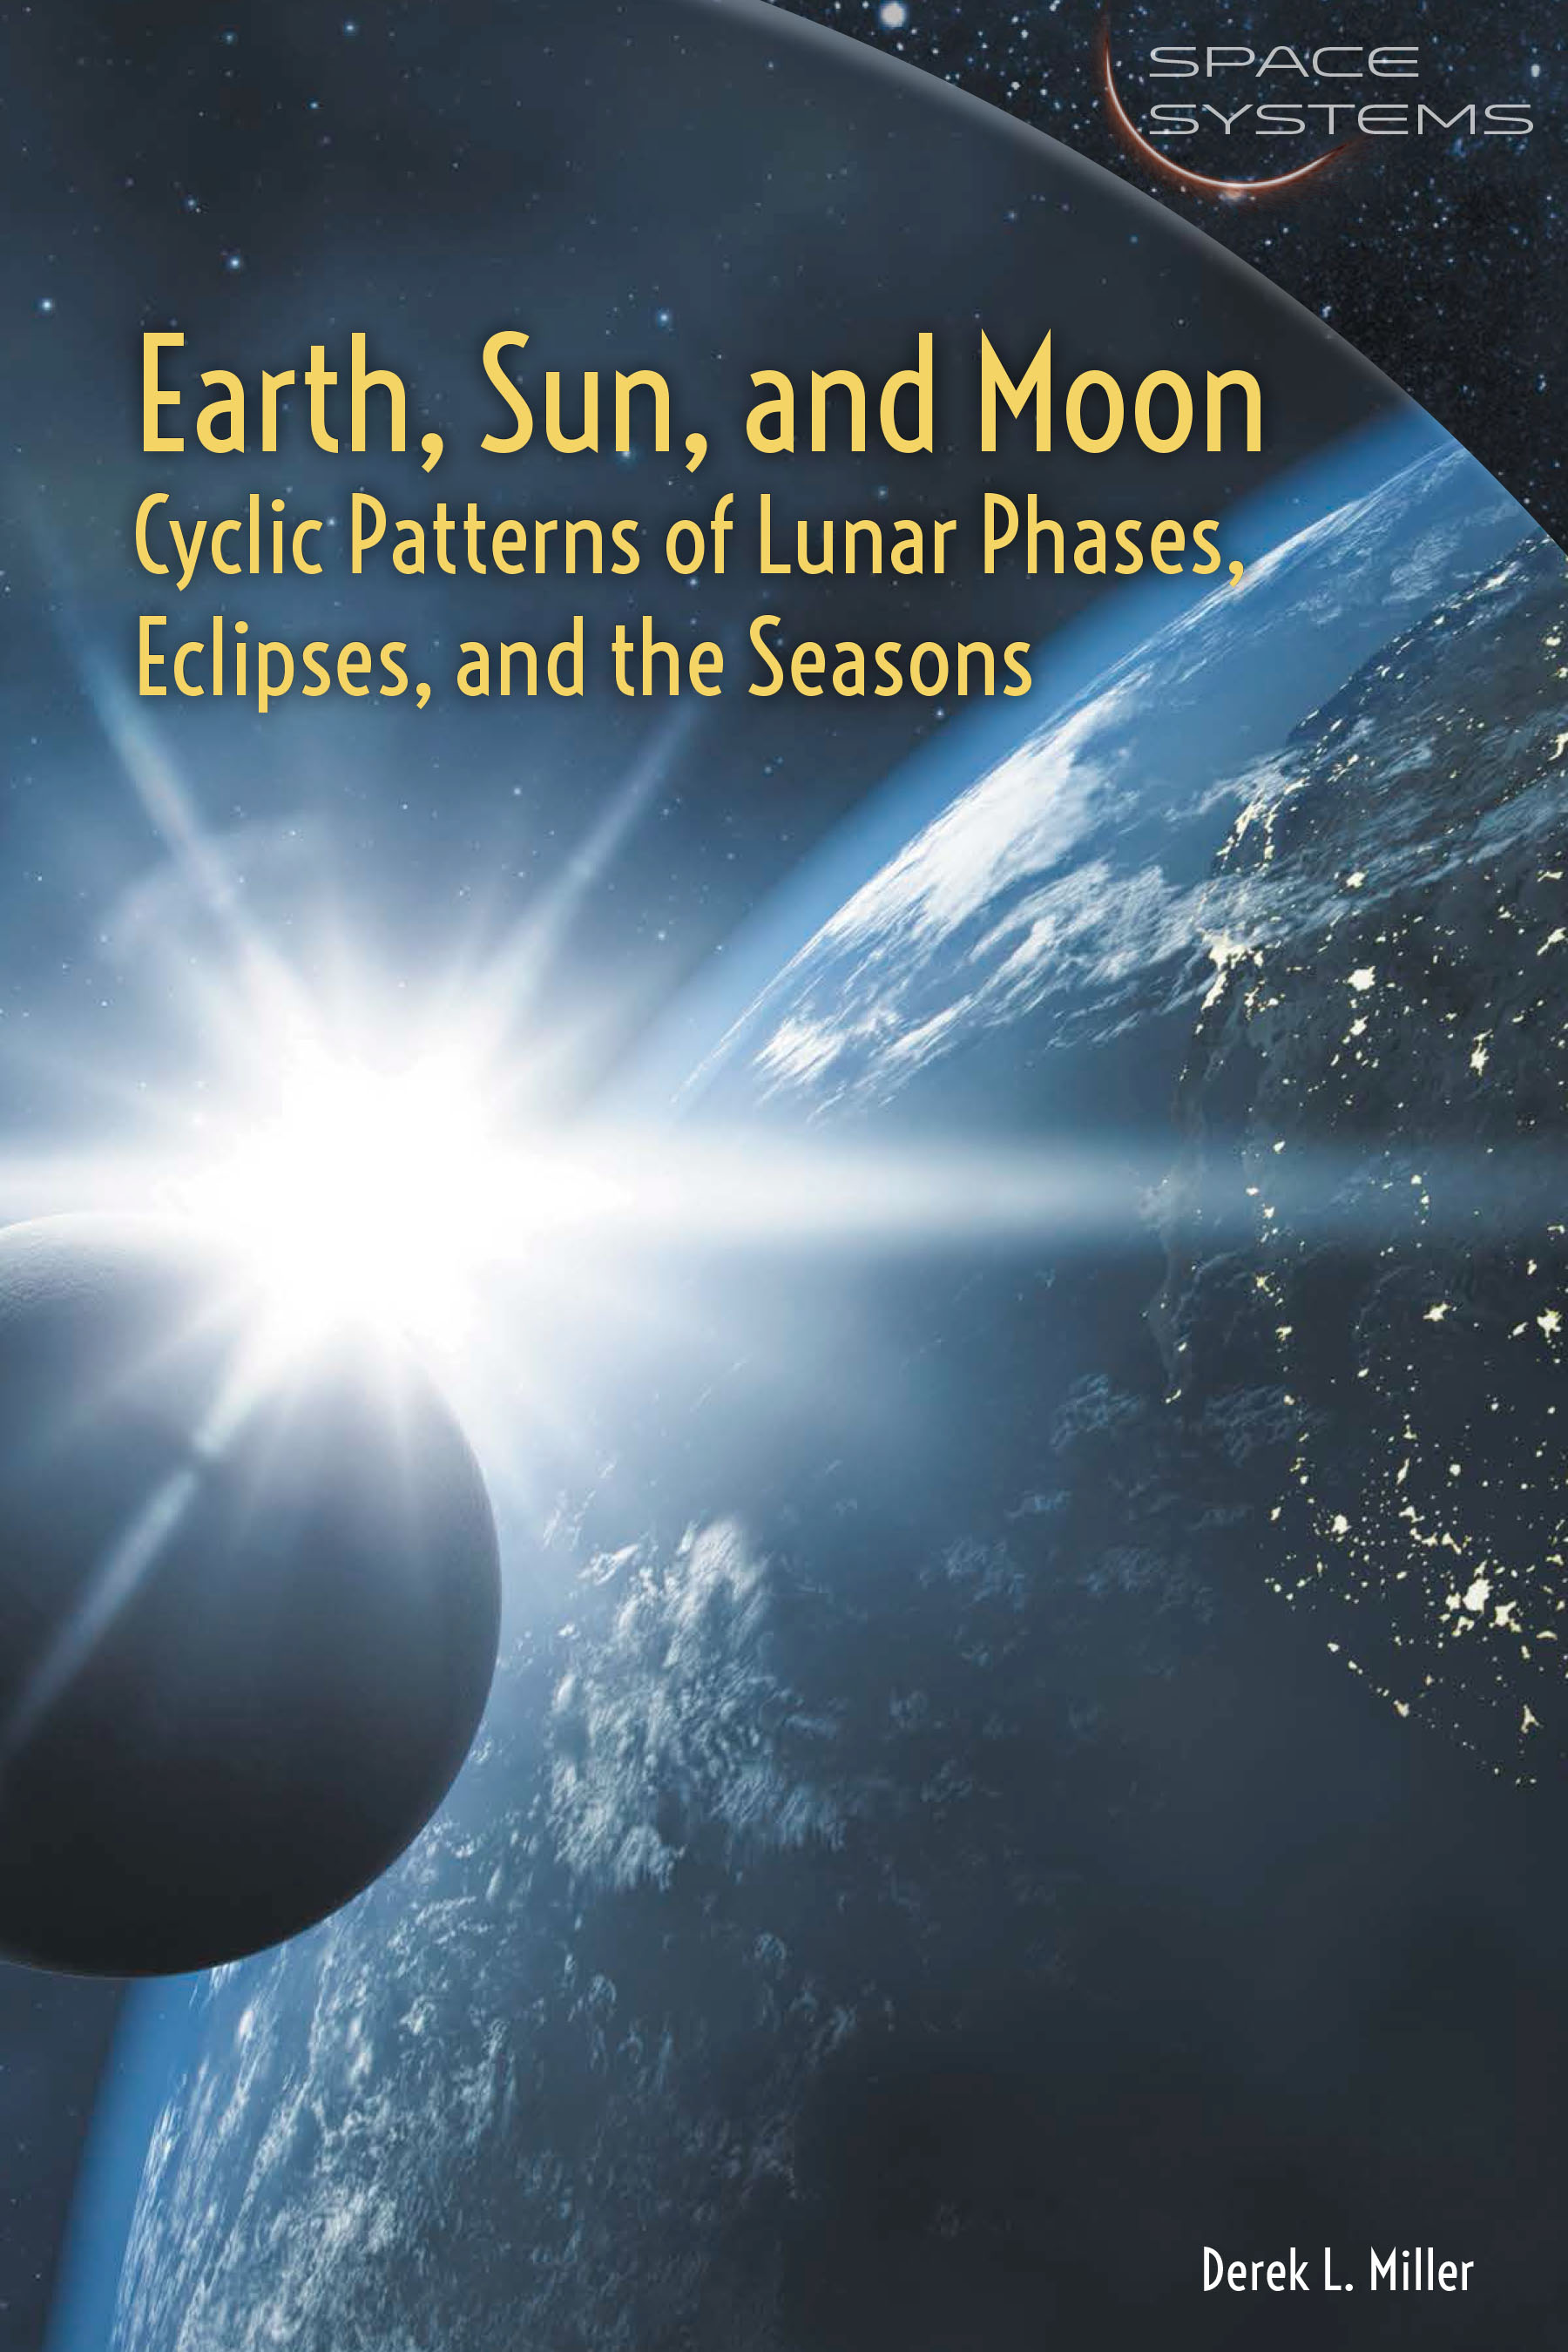 Earth, Sun, and Moon: Cyclic Patterns of Lunar Phases, Eclipses, and the Seasons